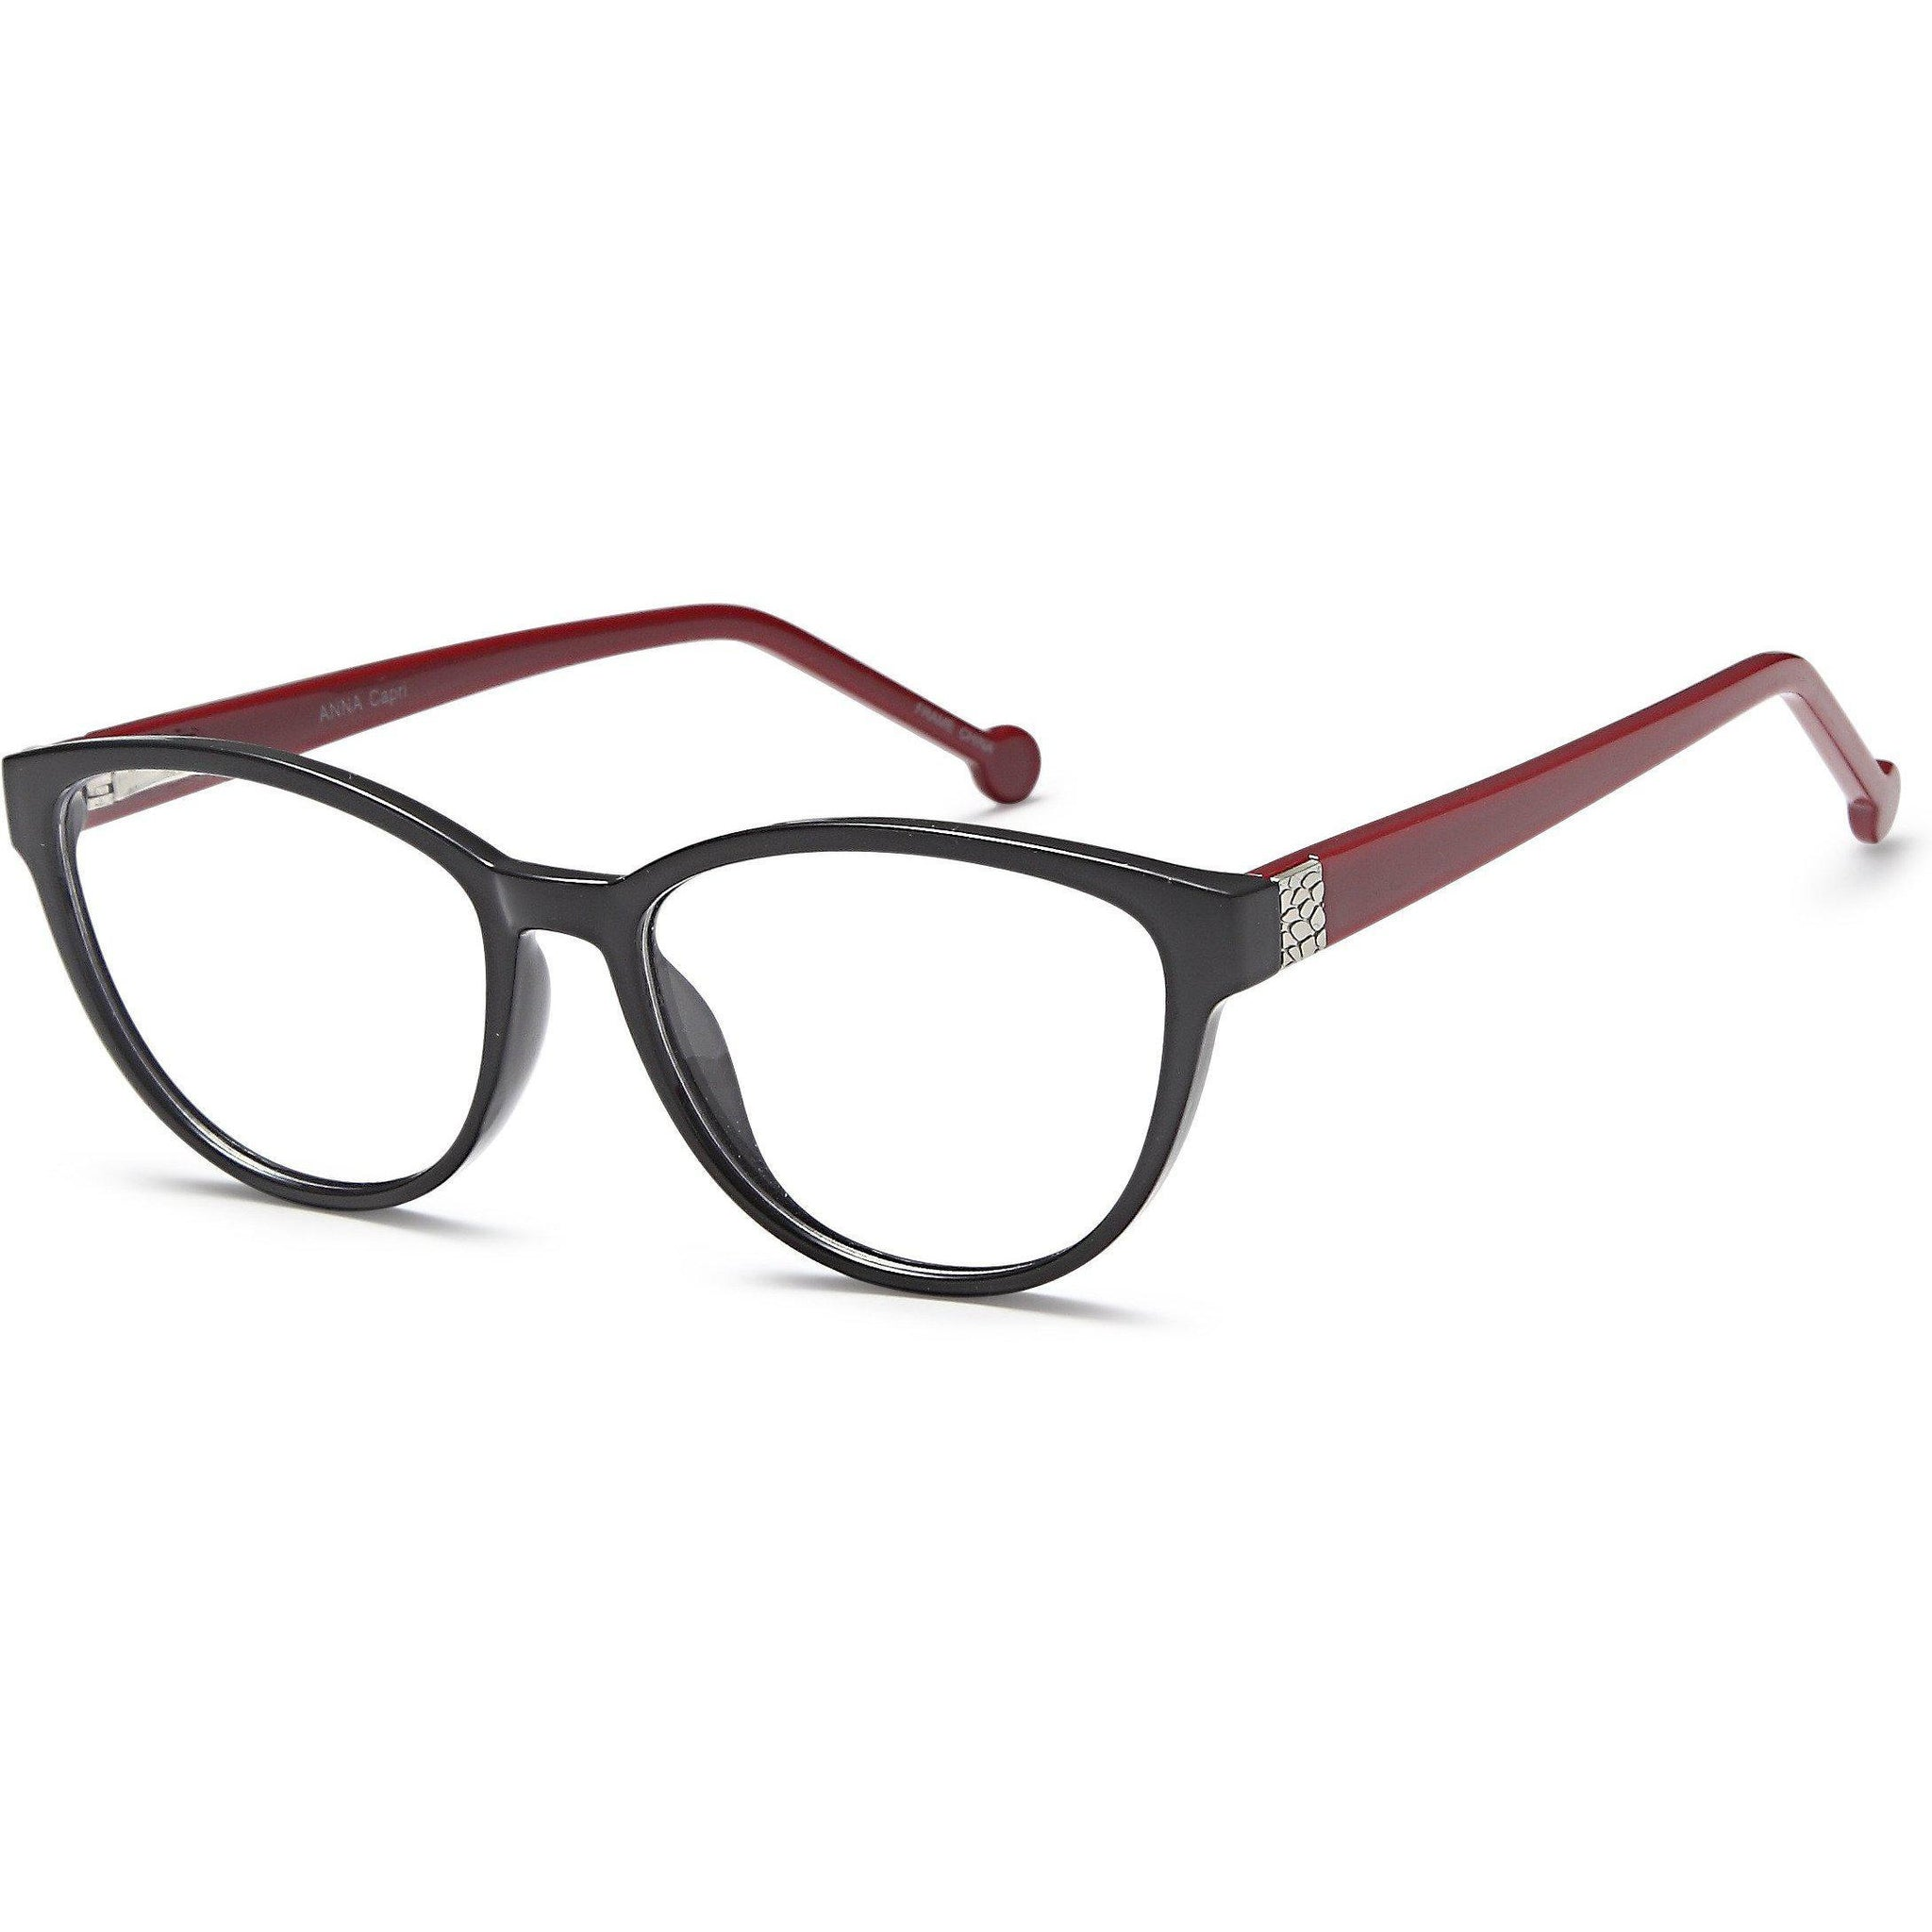 Everyday Prescription Glasses ANNA Frame